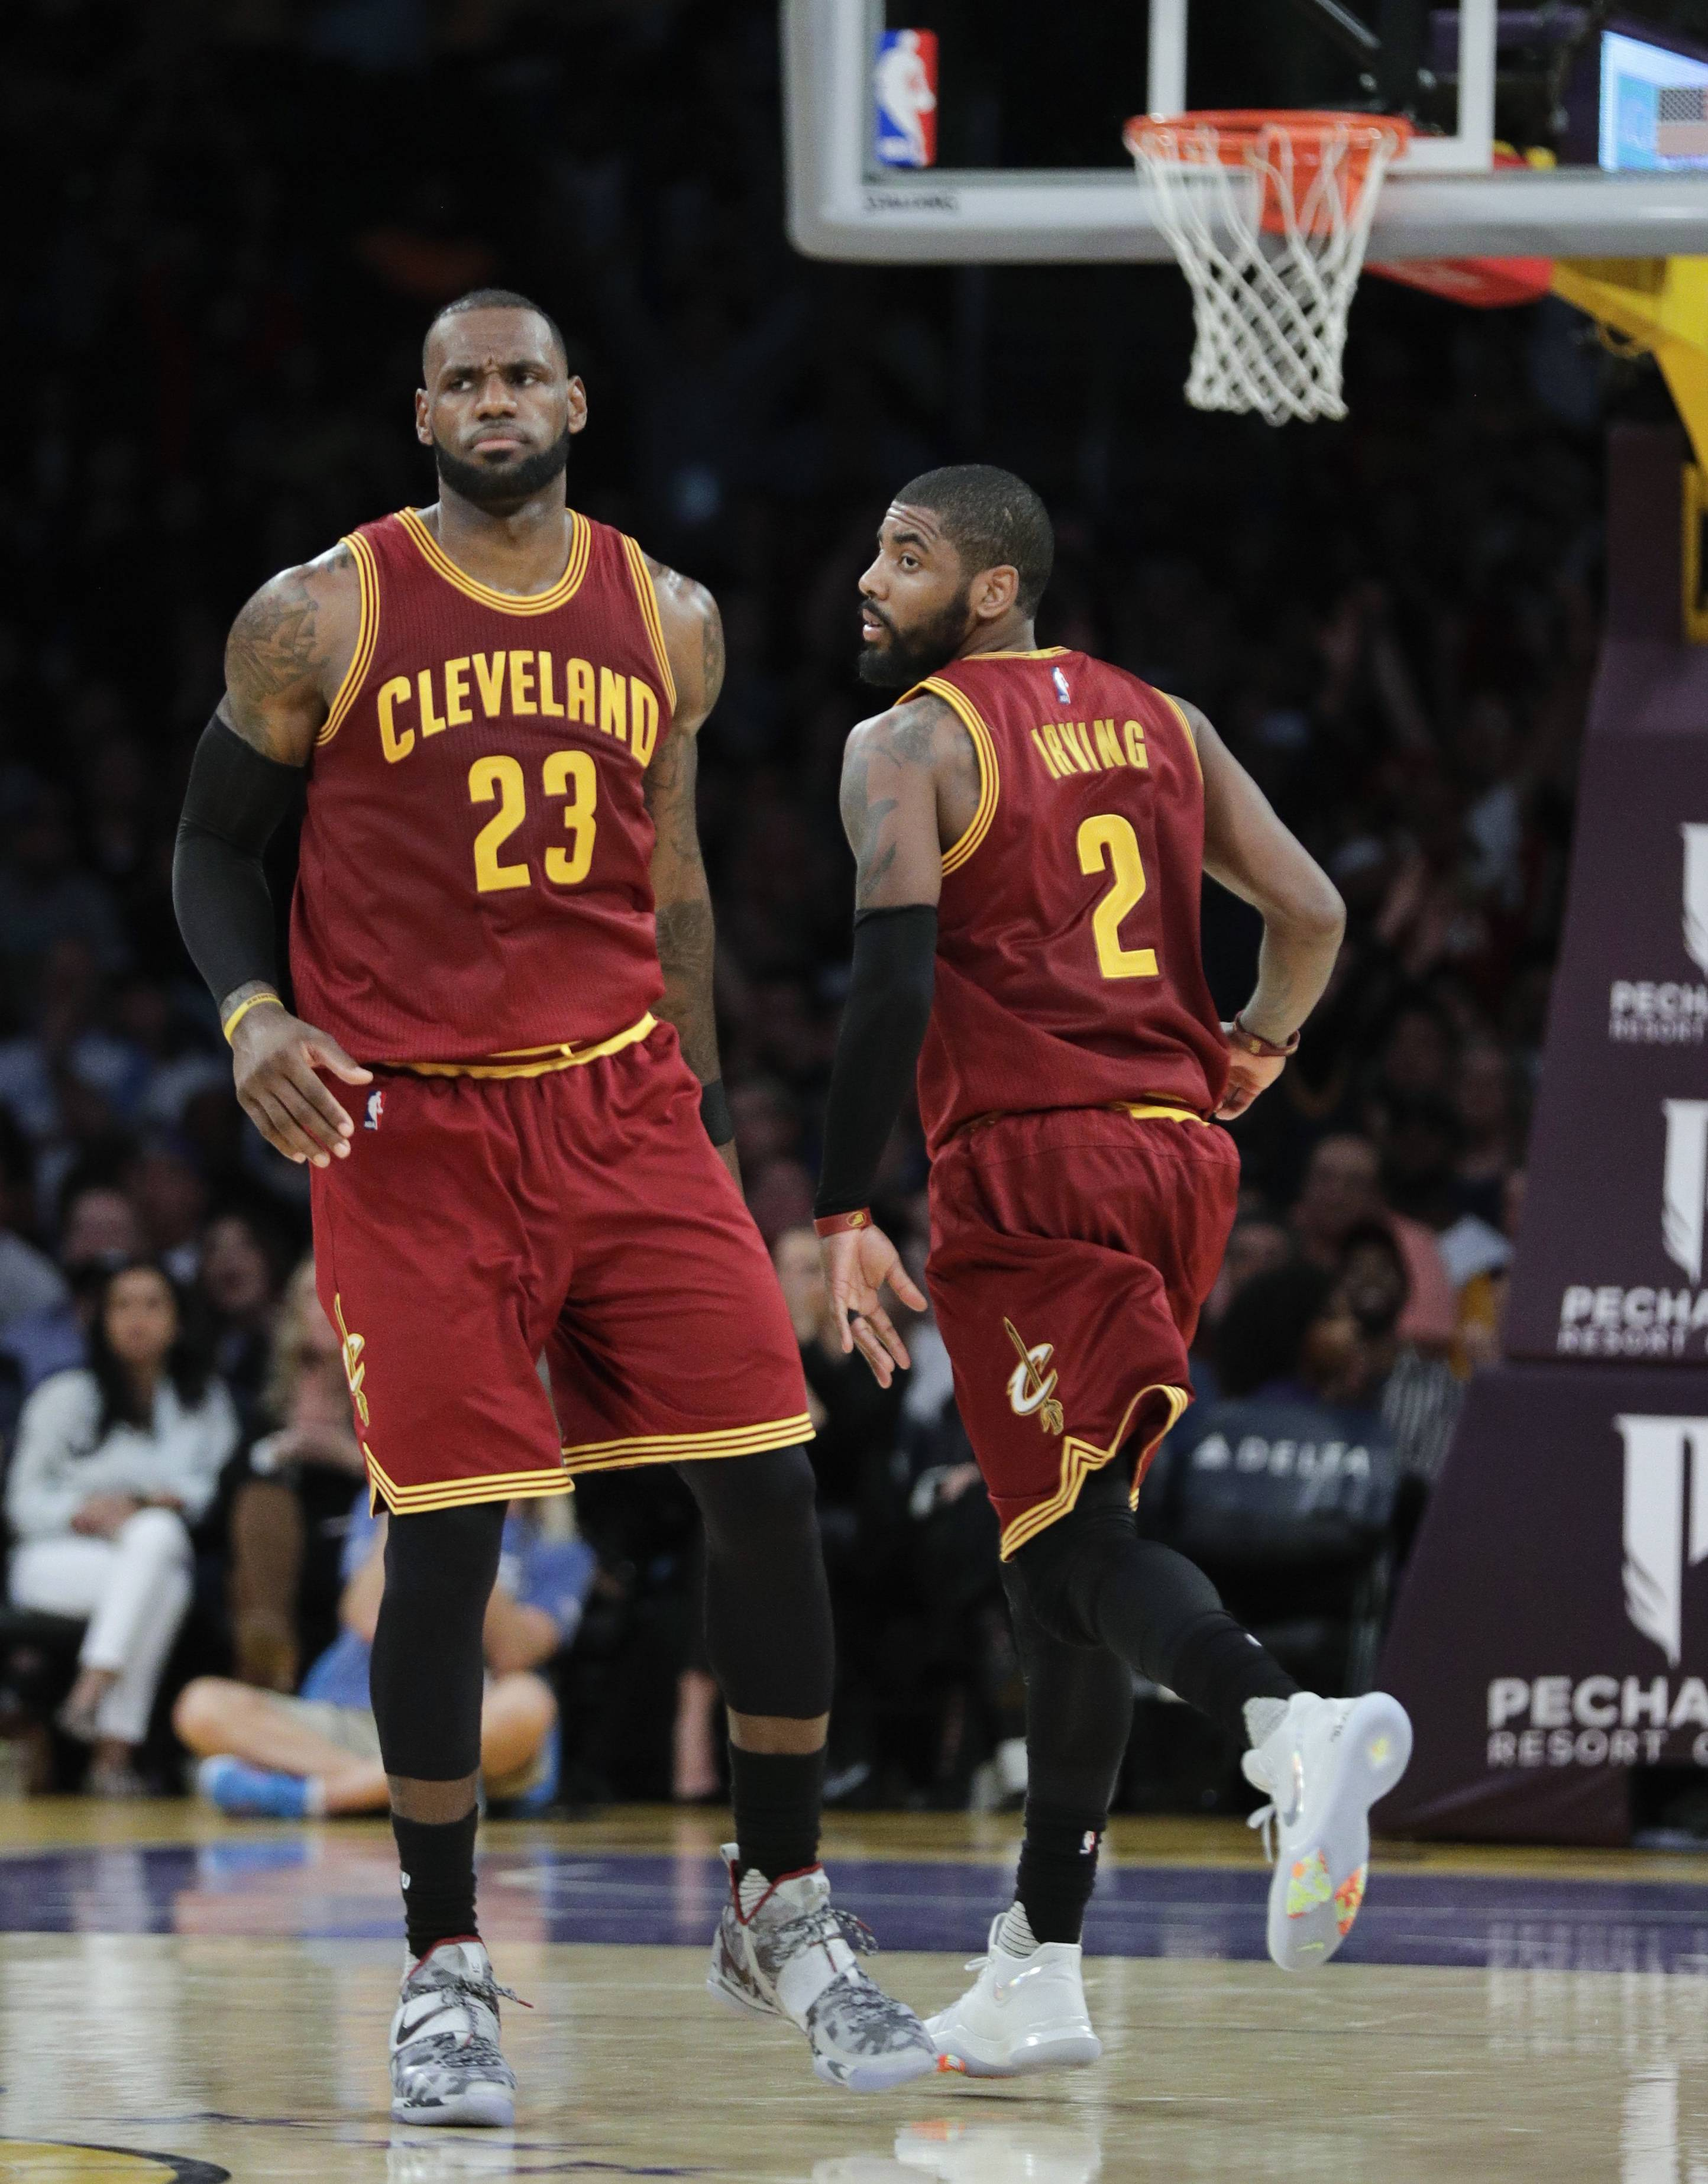 While the Celtics like what Kyrie Irving will bring to their team, the Cleveland Cavaliers, with superstar LeBron James, still appear to have the best team in the Eastern Conference.